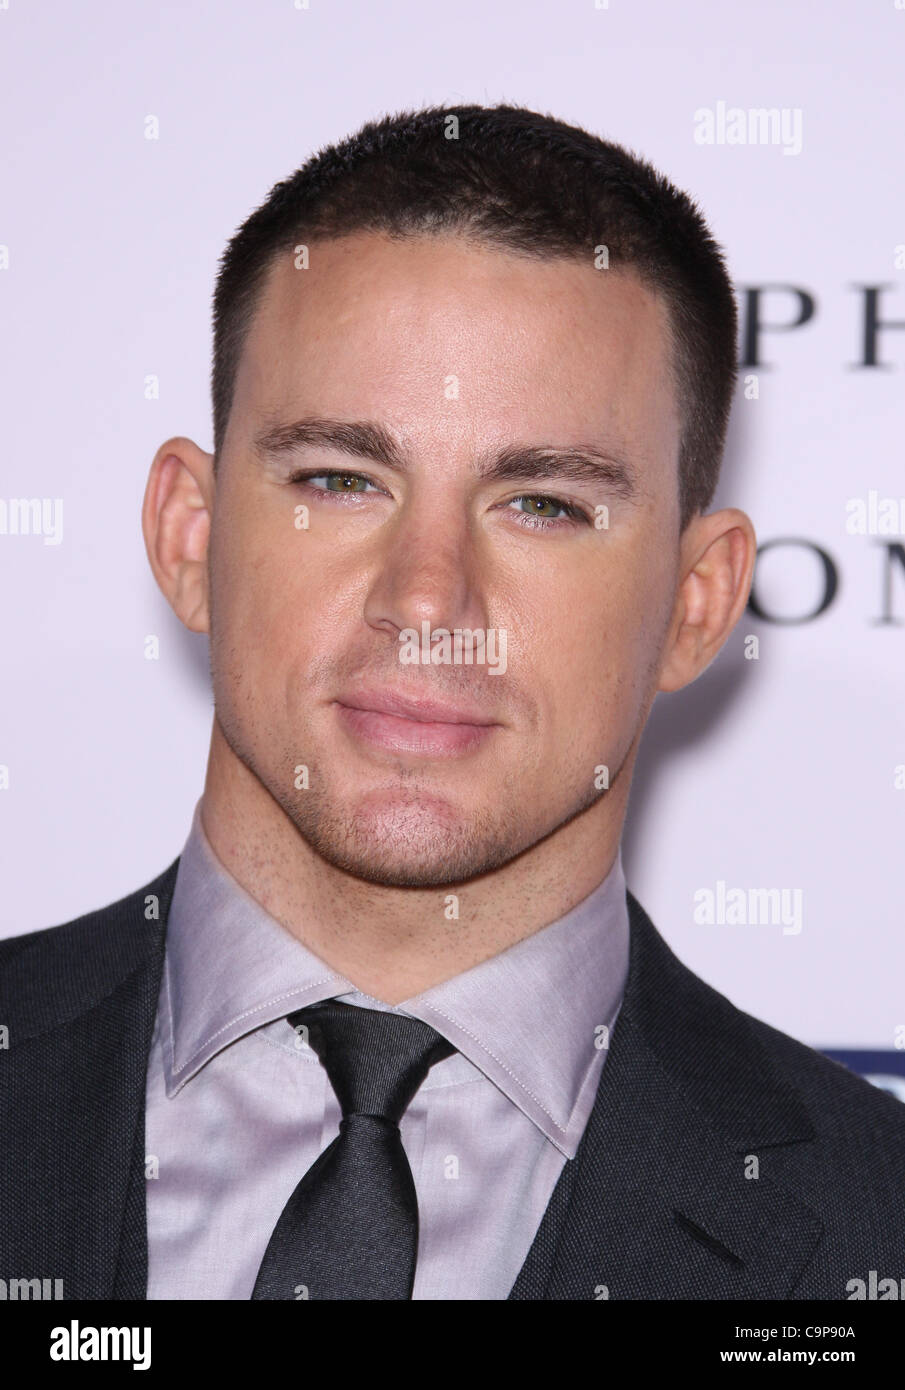 CHANNING TATUM DAS GELÜBDE. Welt PREMIERE HOLLYWOOD LOS ANGELES Kalifornien USA 6. Februar 2012 Stockbild